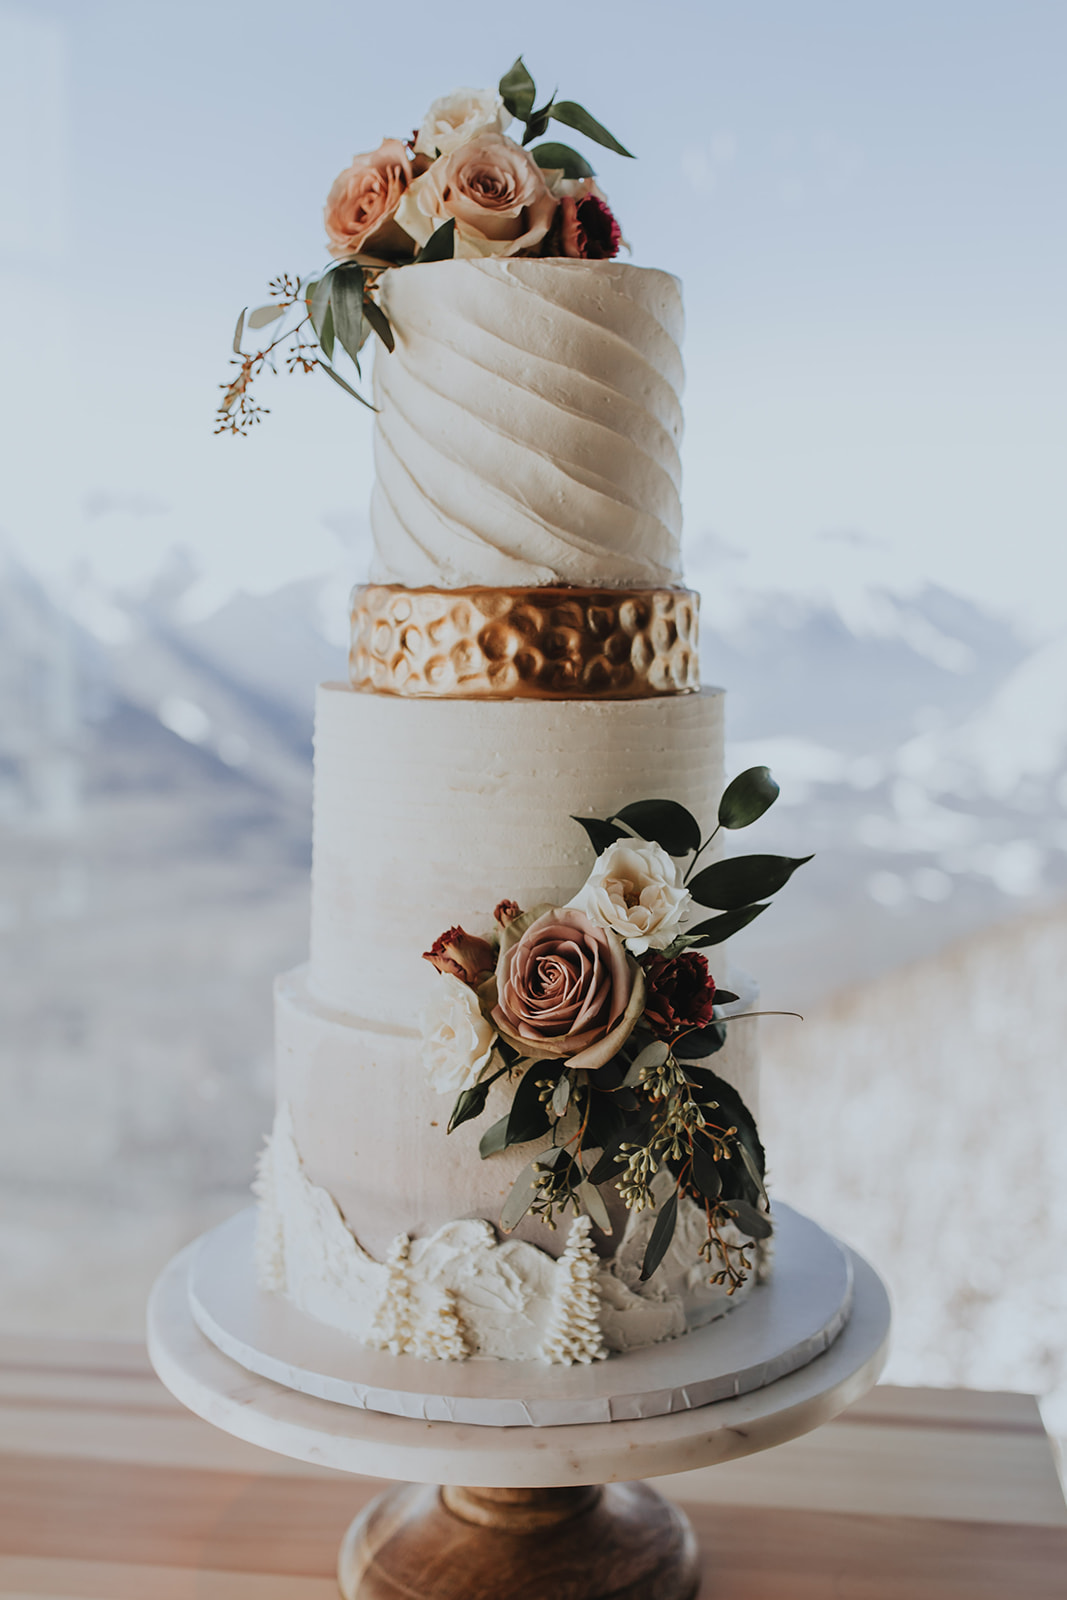 Castano films, Banff wedding, Bake my Day wedding cake.jpg